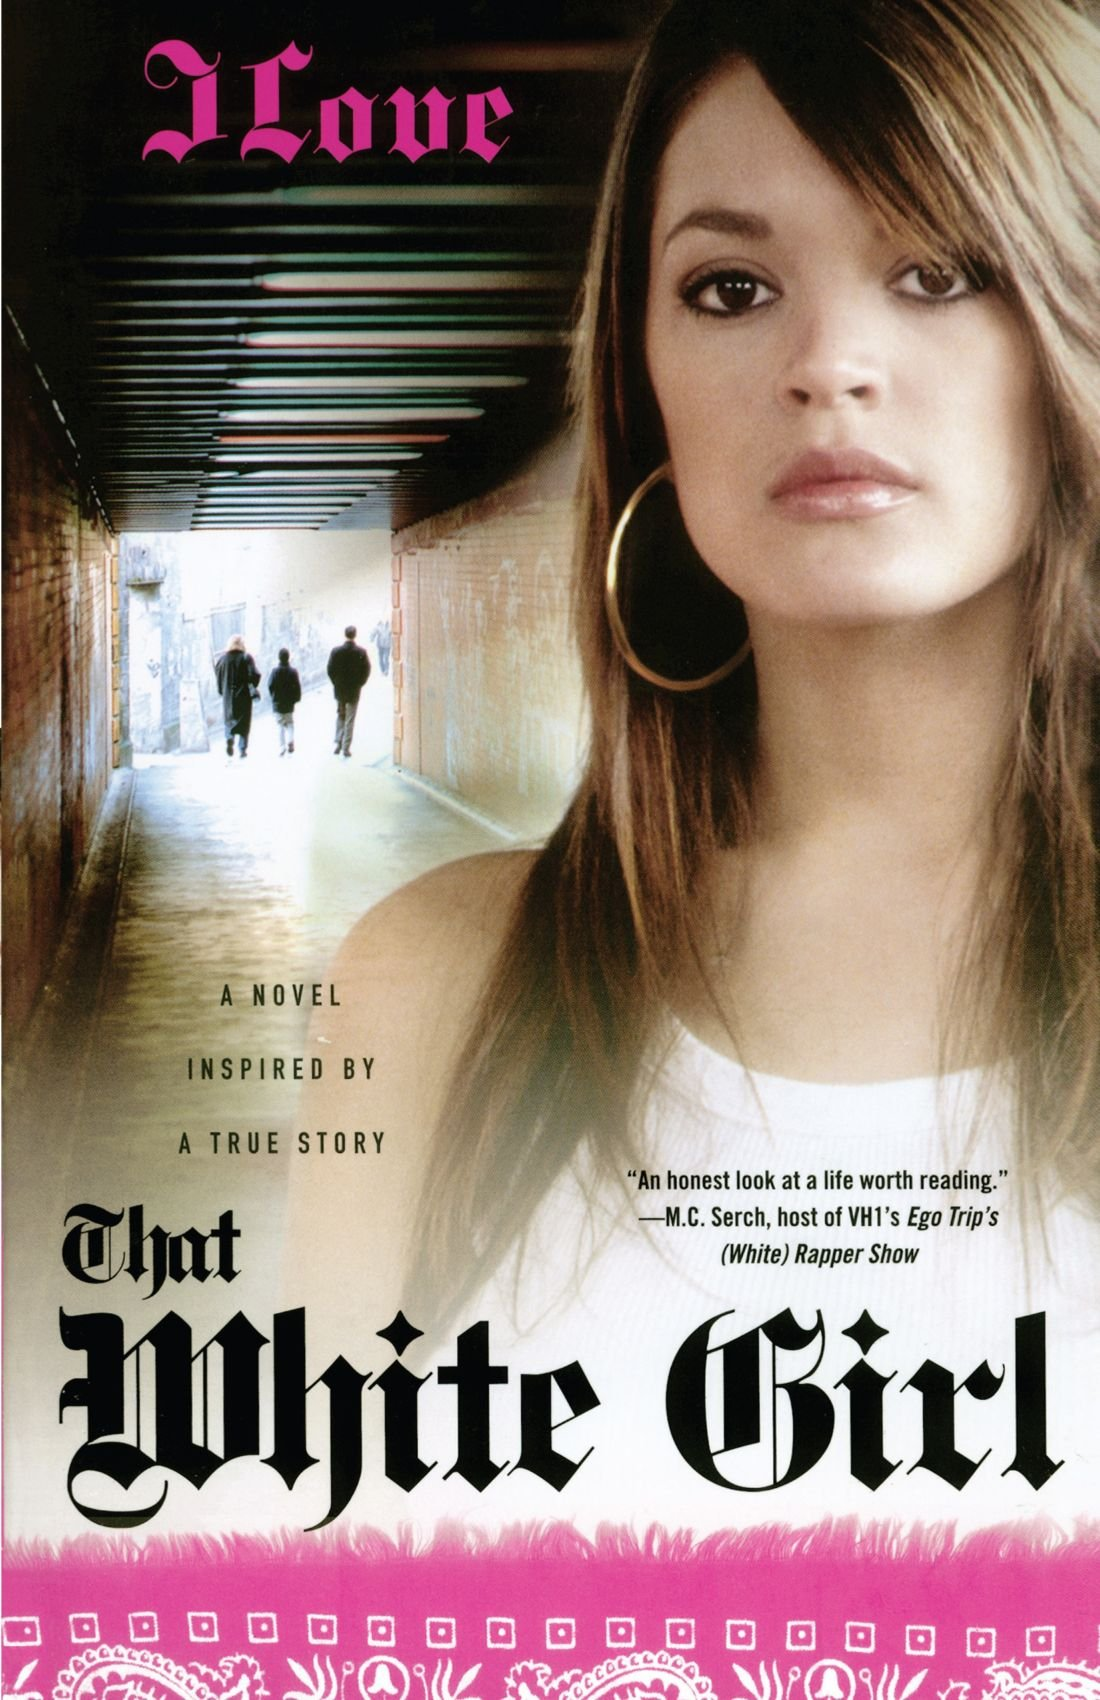 That White Girl - That White Girl is a fresh and hard-edged novel chronicling a young woman's quest for self-discovery while straddling two worlds, that of her middle-class Irish Catholic upbringing and her new family -- the Crips, America's notorious street gang. Based on JLove's incredible life story, this book is a sharp and candid coming-of-age story, with hip-hop as its backdrop.